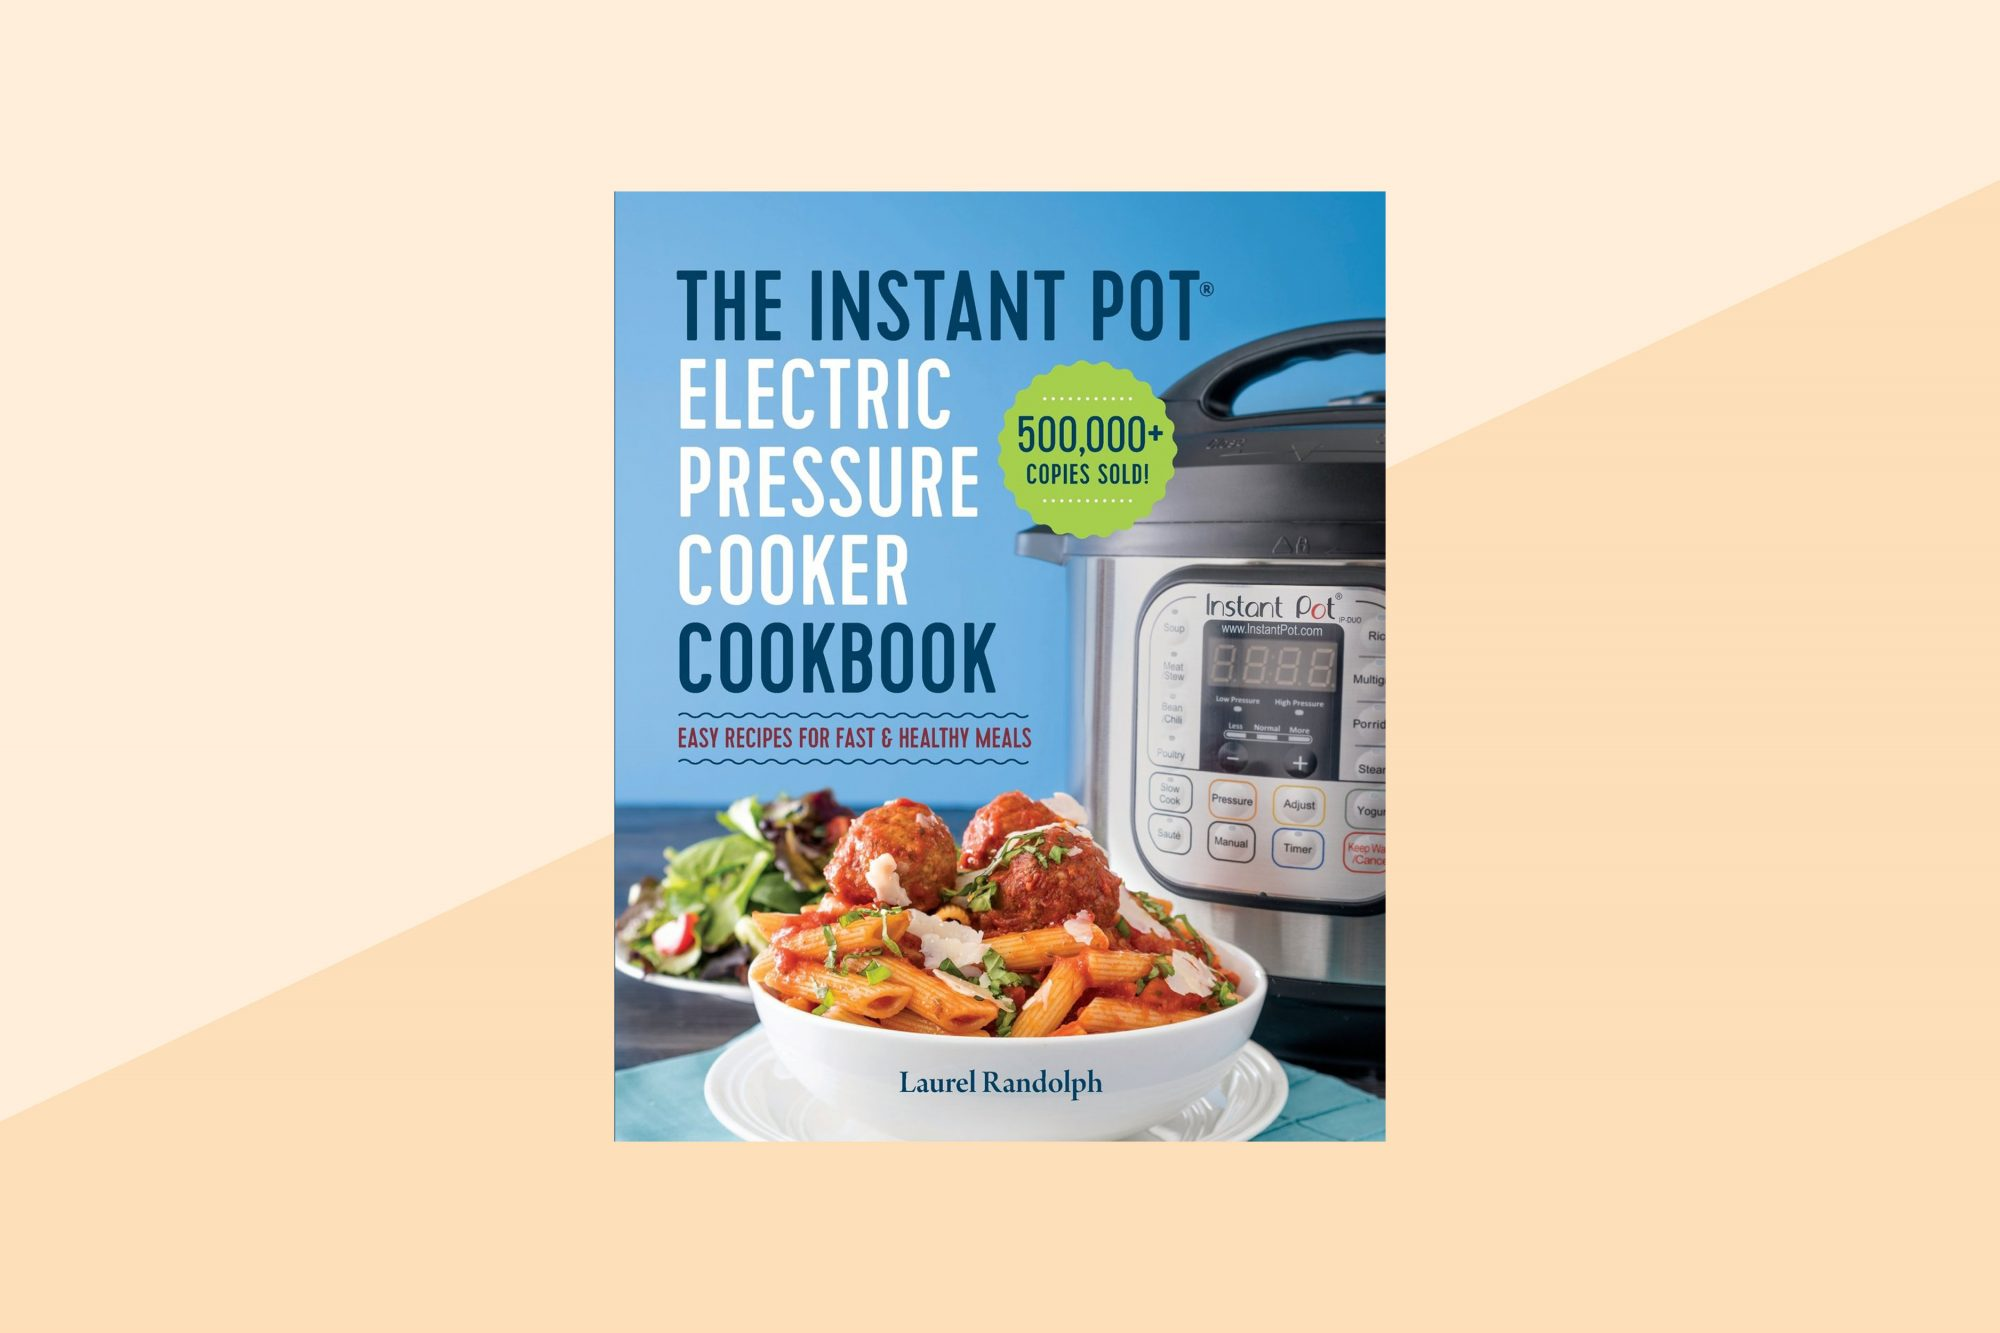 The Instant Pot Electric Pressure Cooker Cookbook: Easy Recipes for Fast & Healthy Meals Paperback